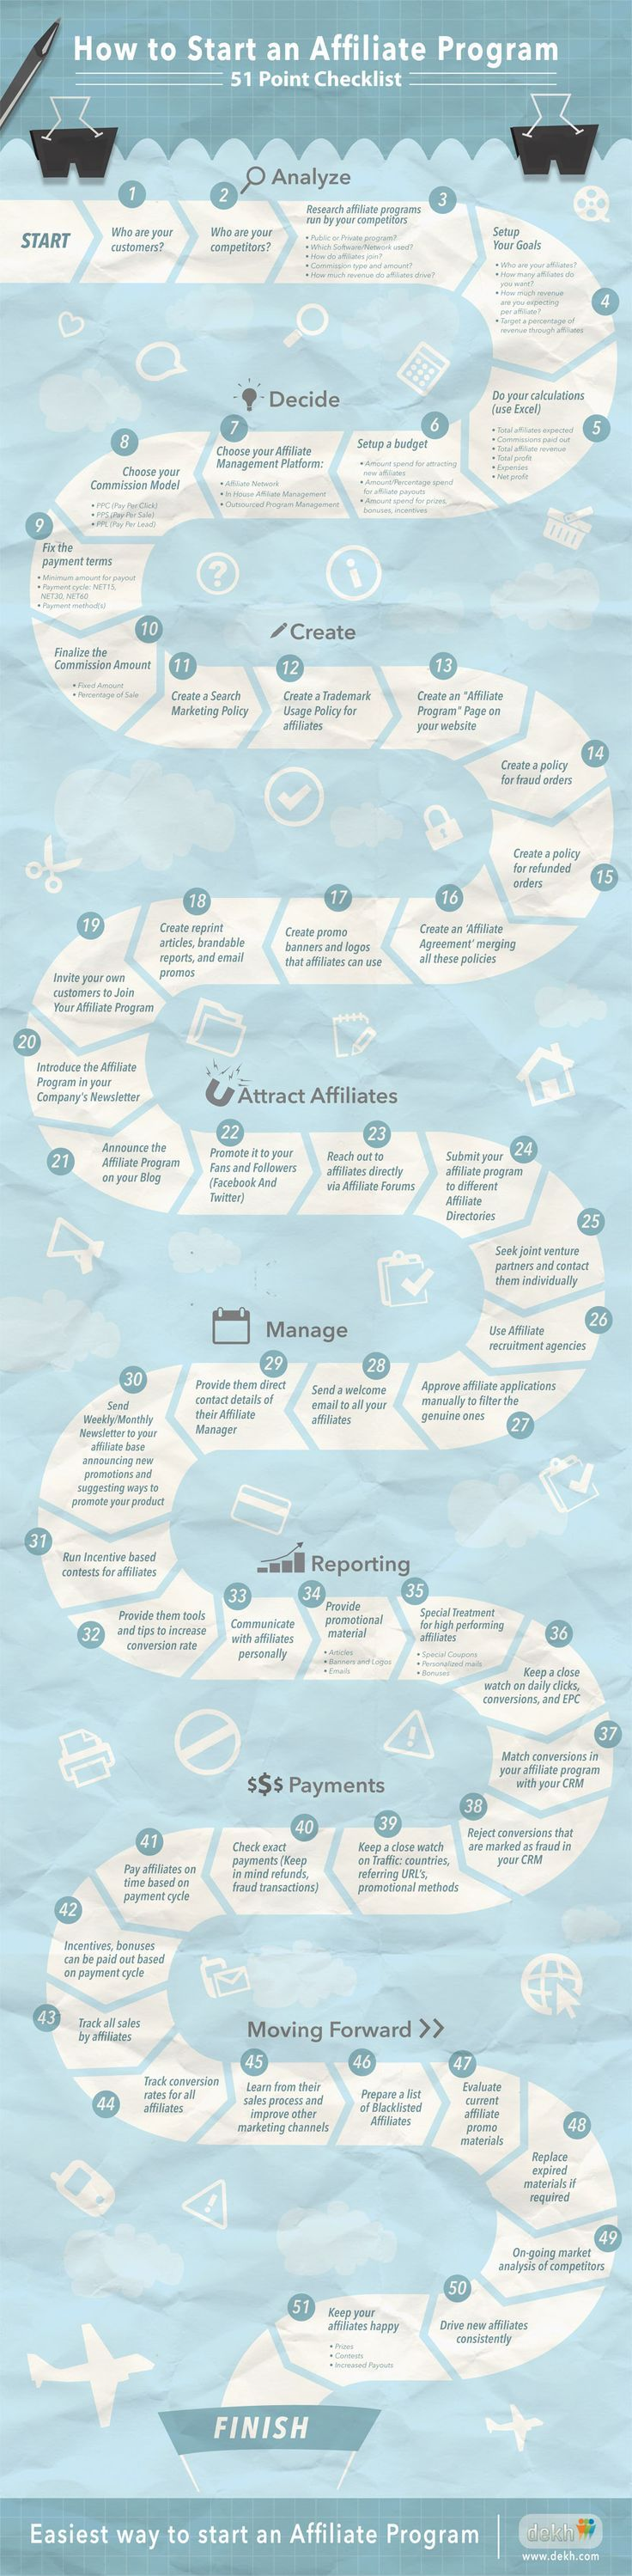 Neat Infographic for #AffiliateMarketers How to Start an Affiliate Program   Infographic image start affiliate program infographic10: